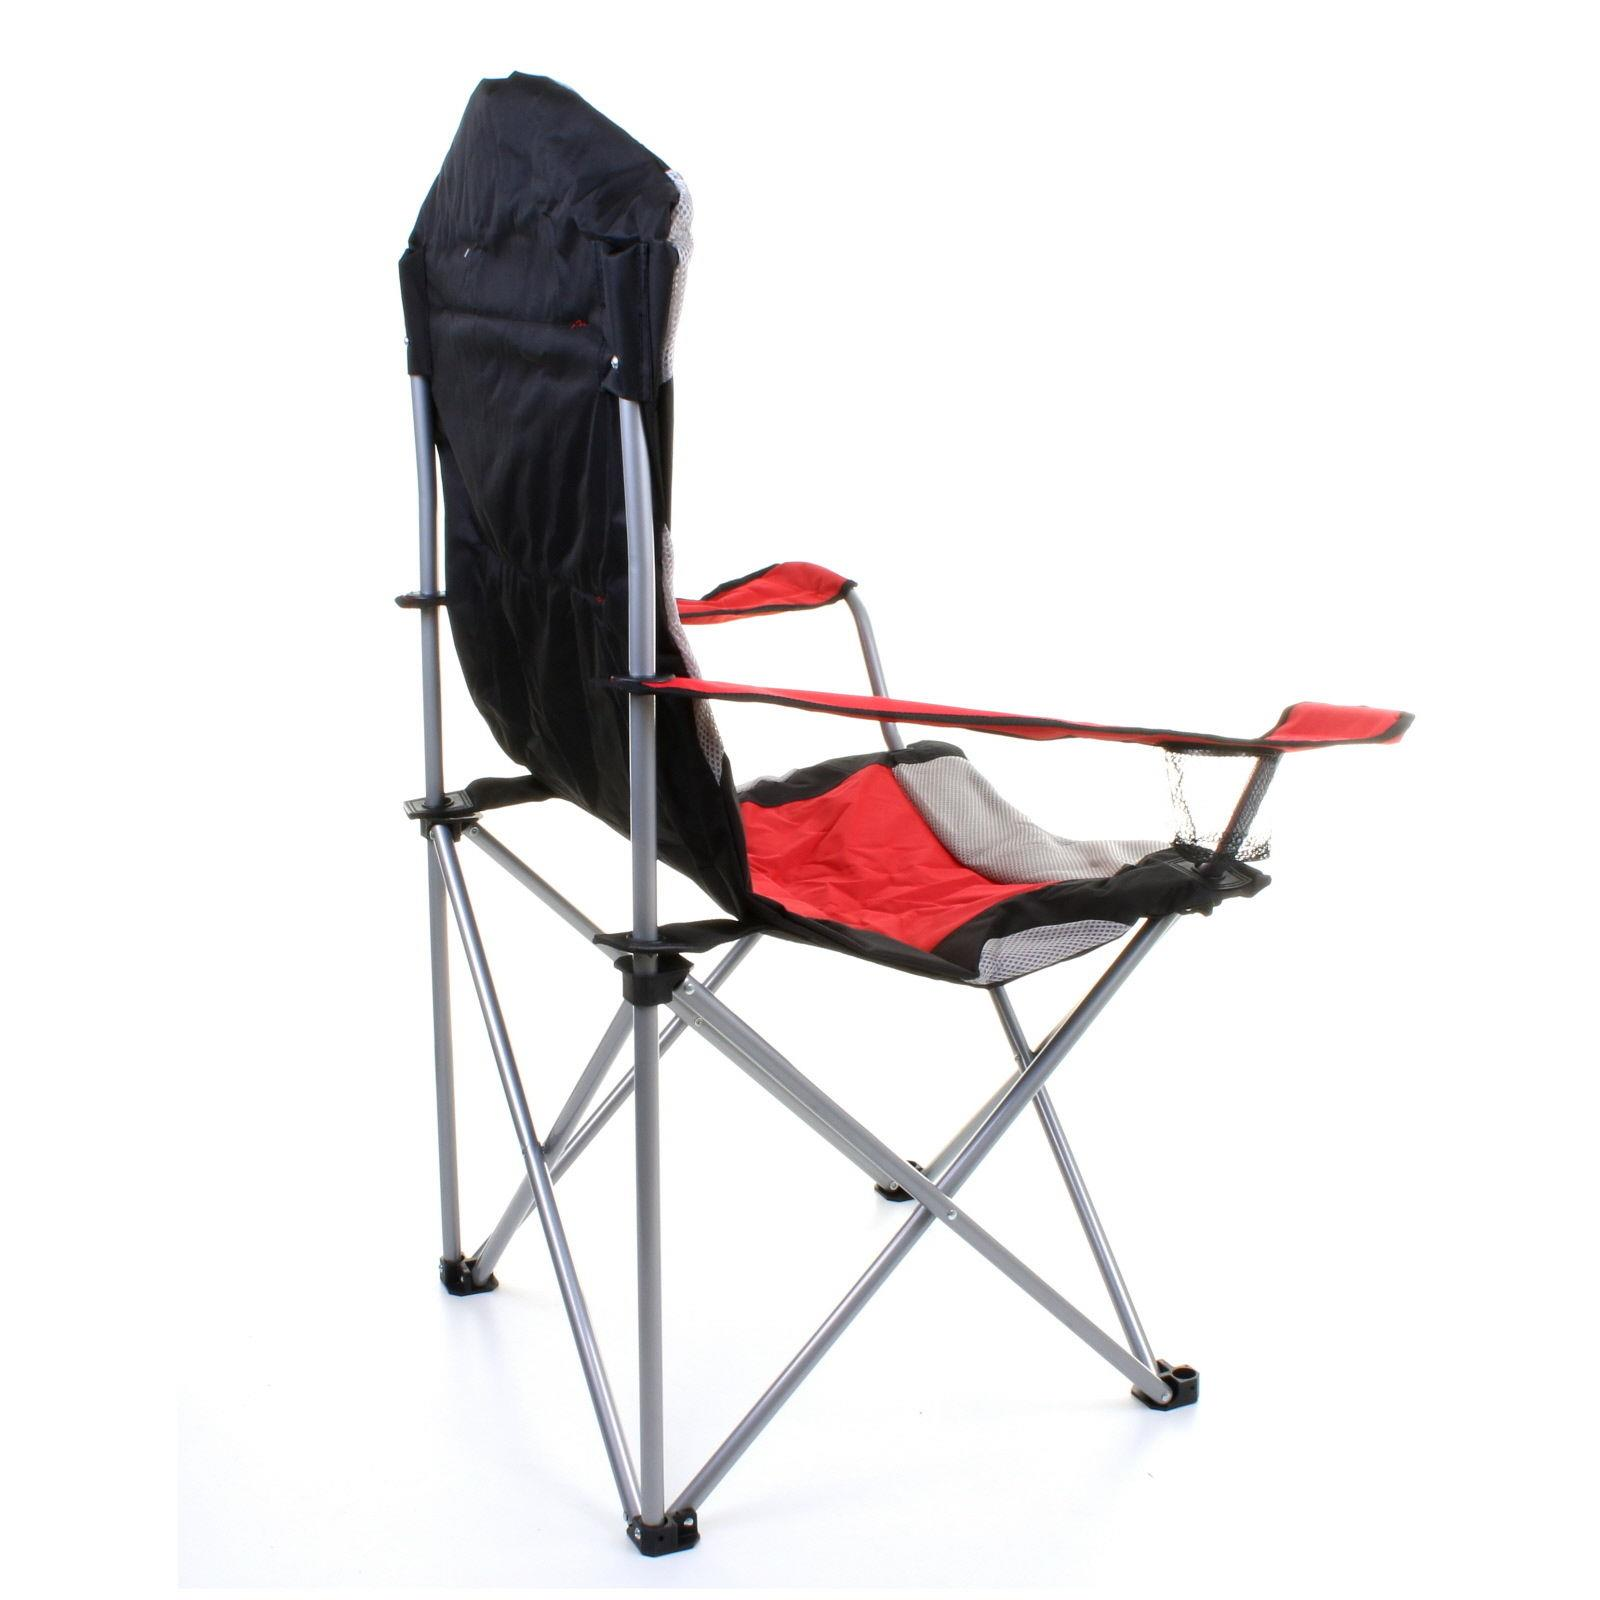 thumbnail 12 - Folding Camping Deluxe Chairs Heavy Duty Luxury Padded with Cup Holder High Back